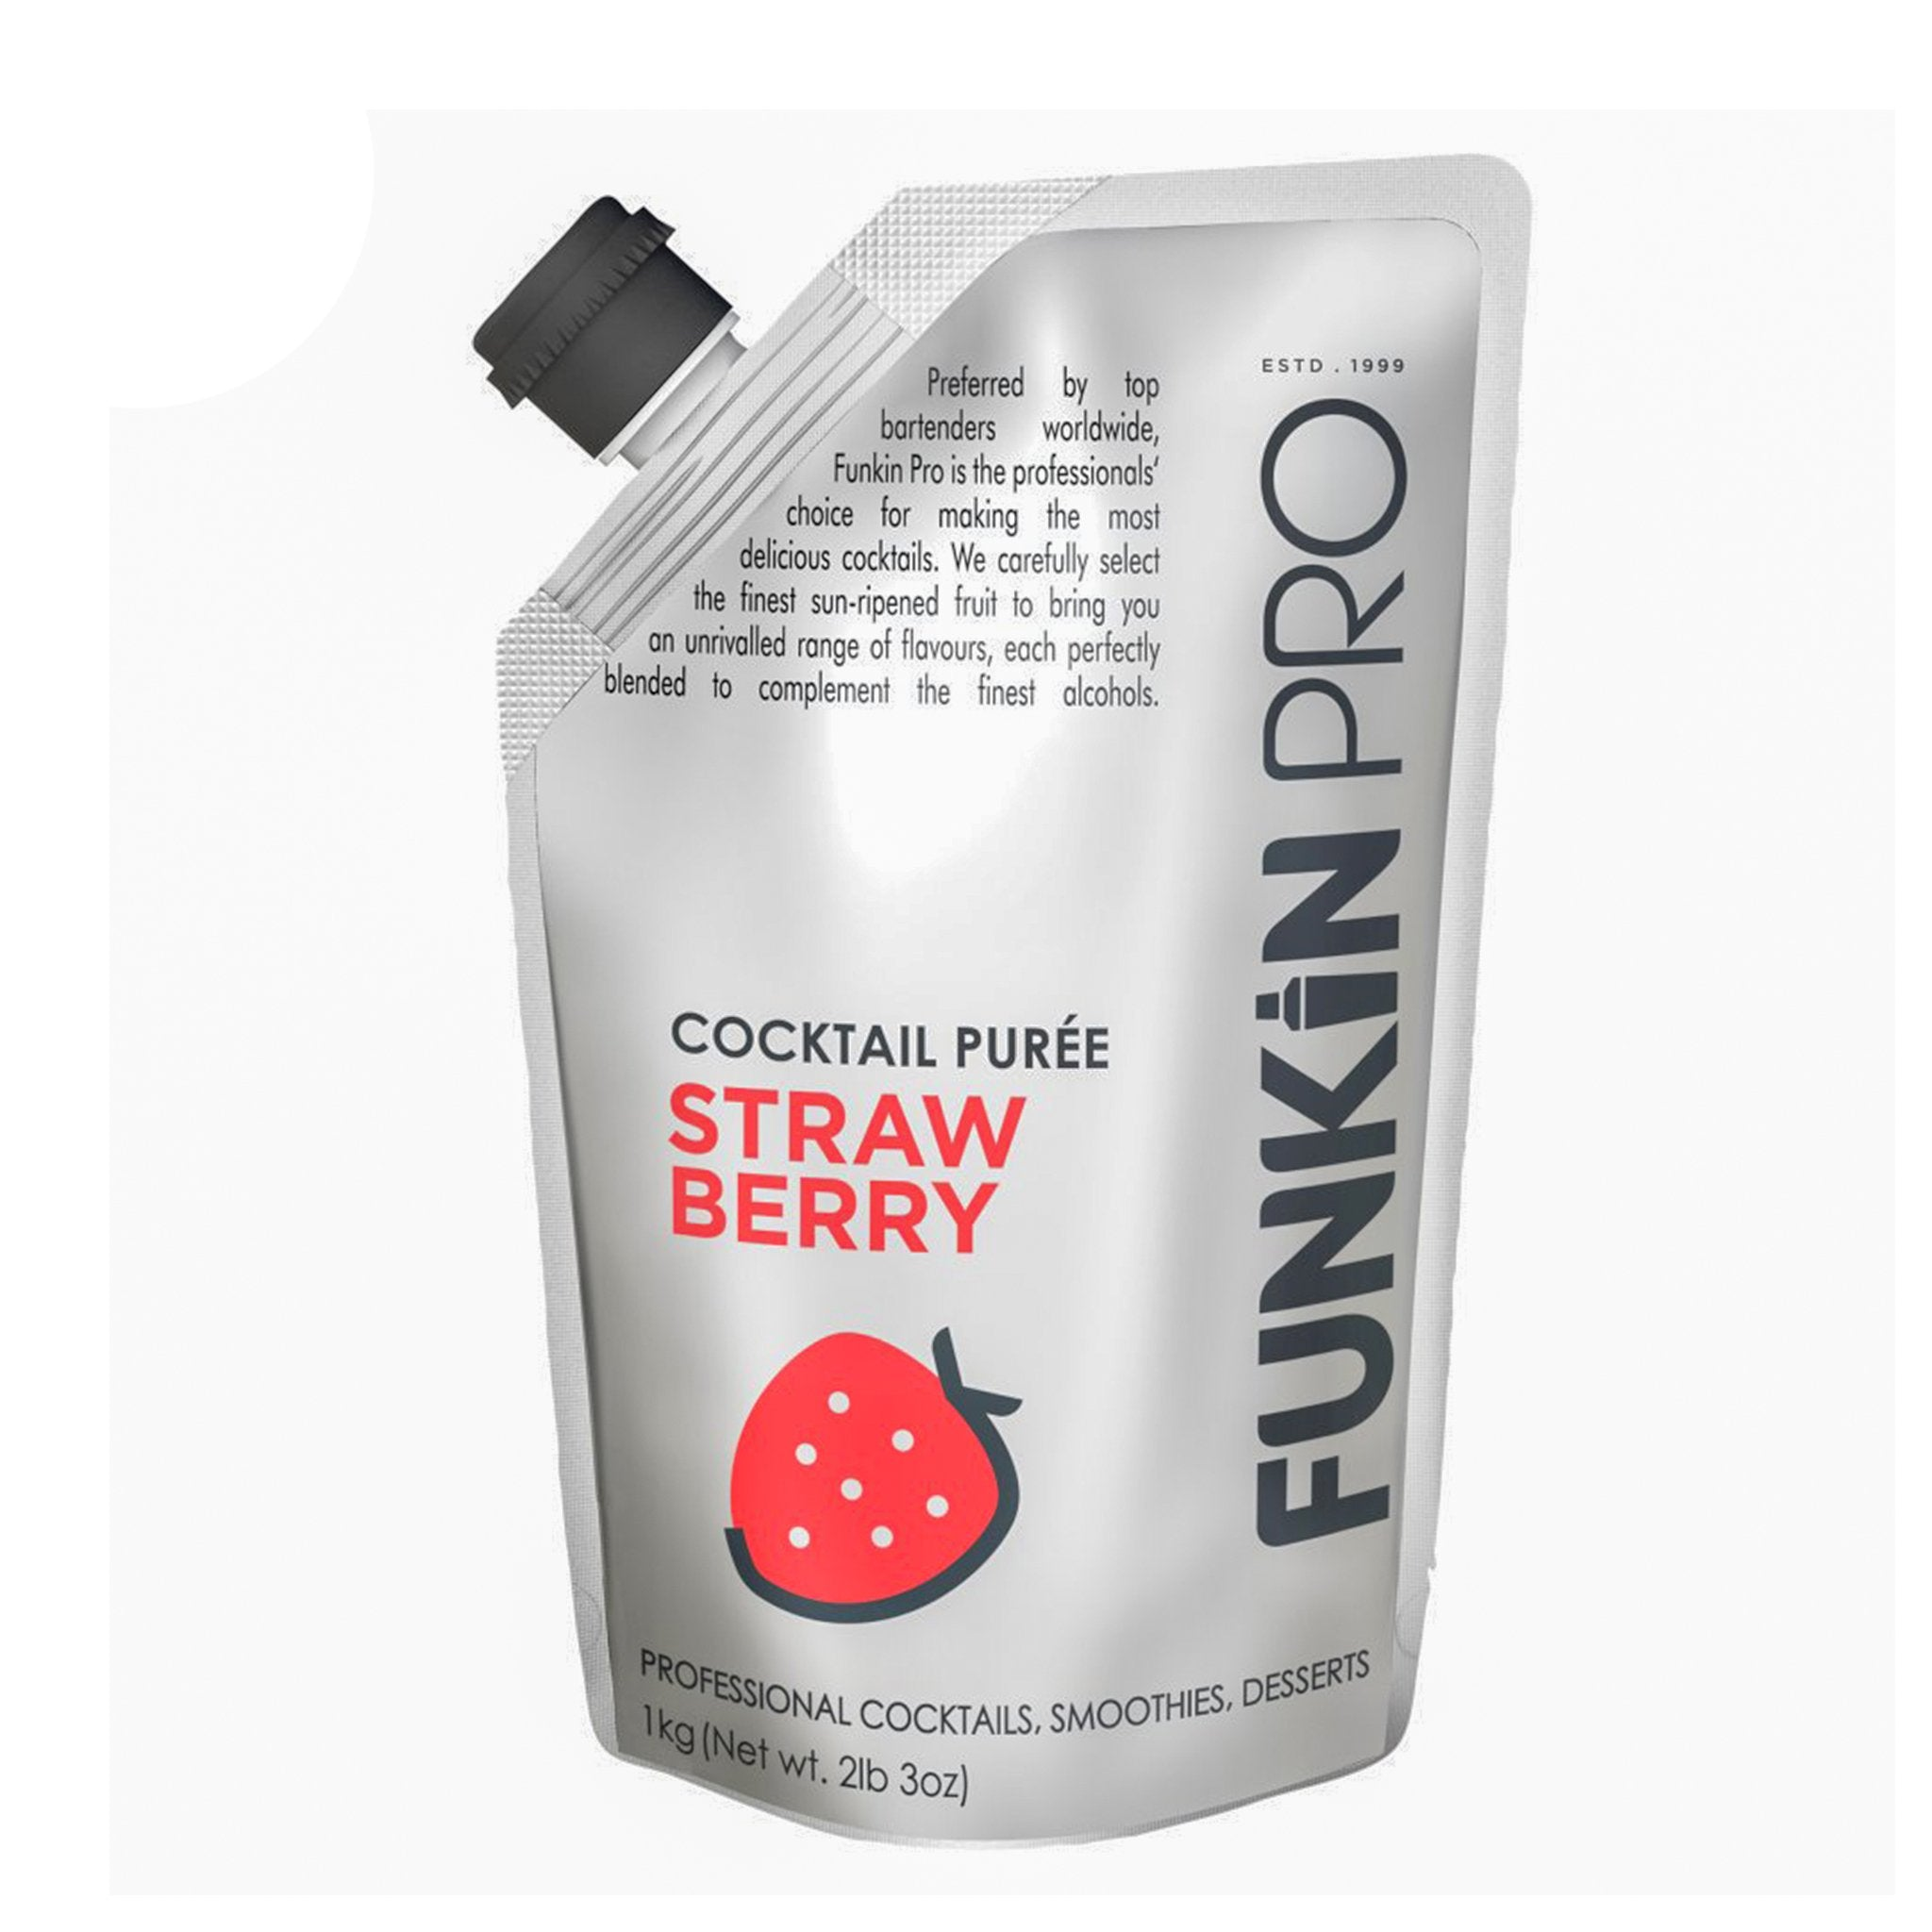 Funkin Pro Cocktail Purée Strawberry1kg, Alcoholic Beverages by Drinks Shop